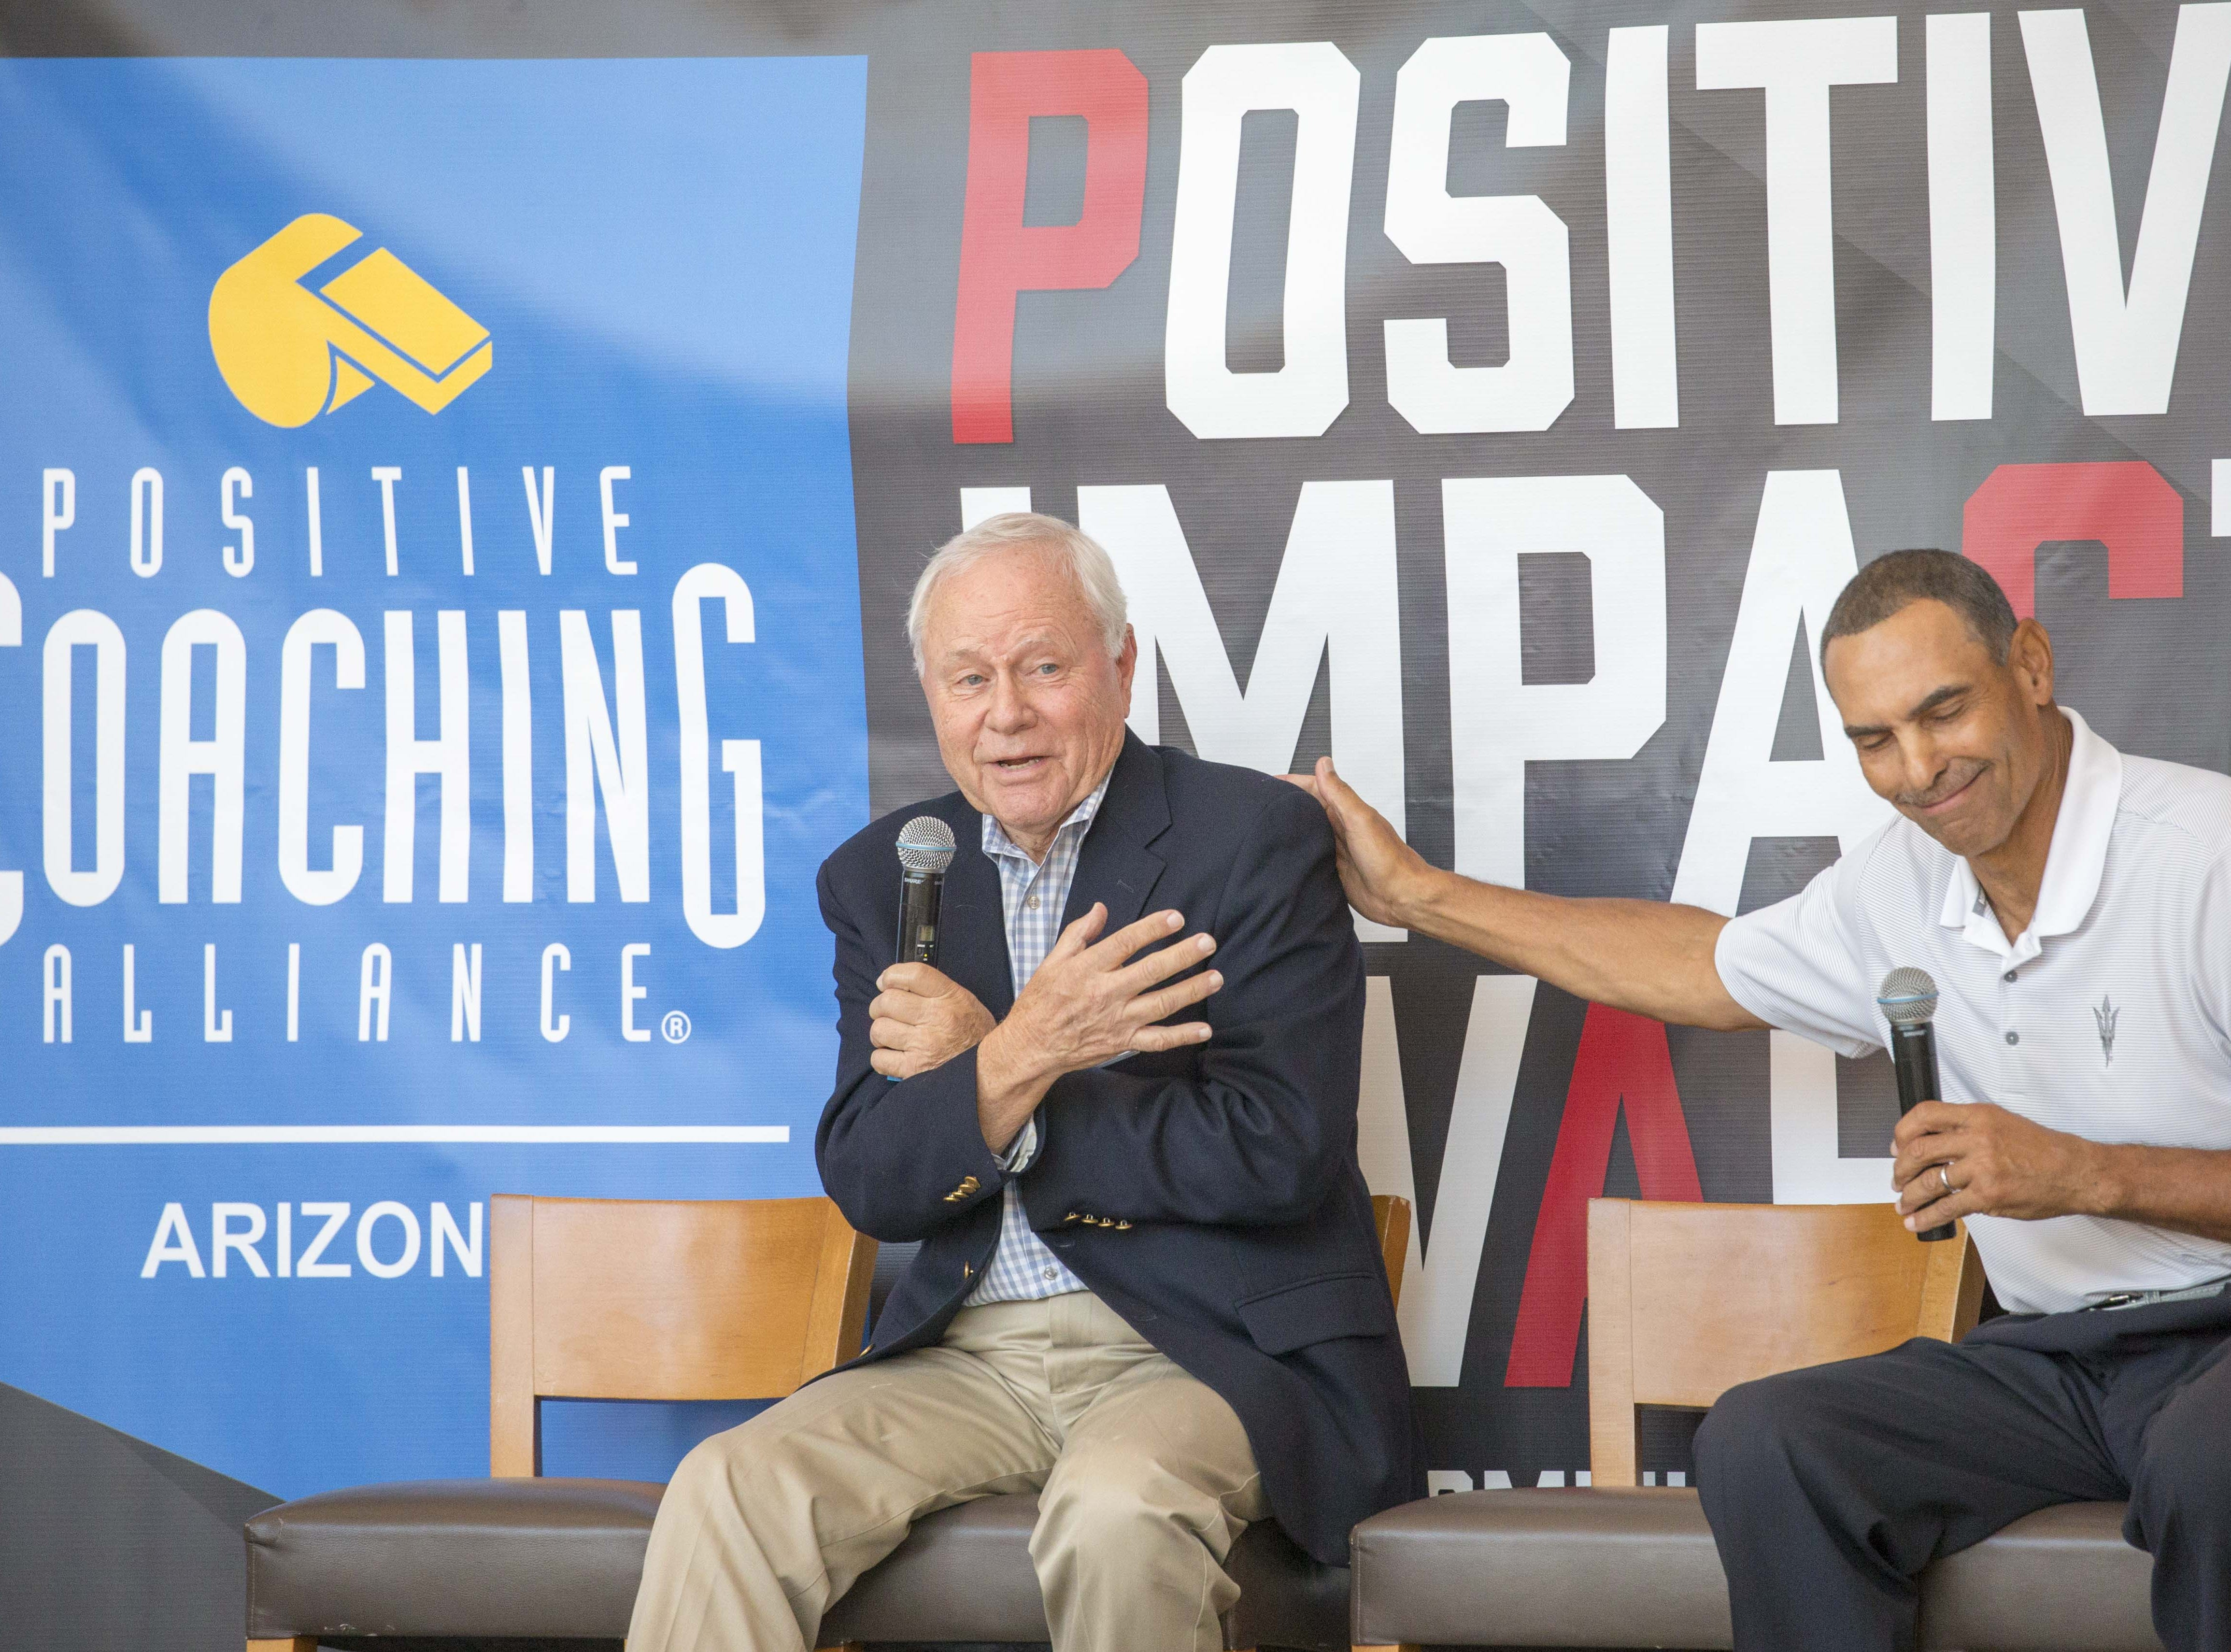 Former Arizona coach Dick Tomey, left, and ASU coach Herm Edwards share a laugh during The Positive Coaching Alliance-Arizona event.